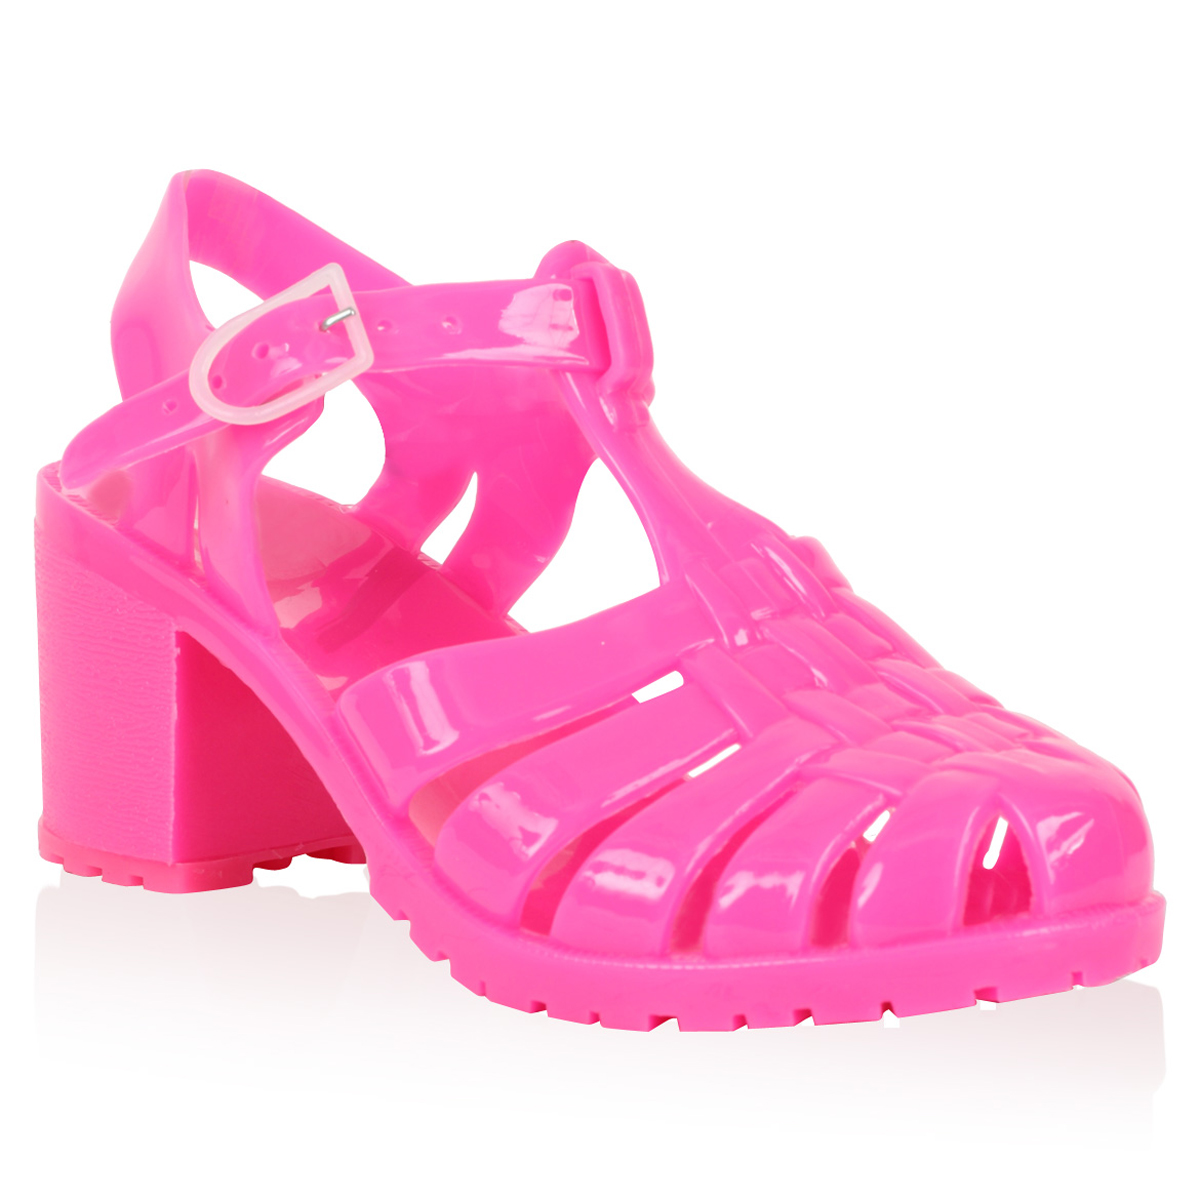 Women's jelly sandals size 10 - Womens New Pink Low Heel Ladies Summer Cut Out Sandals Jelly Shoes Size 3 8